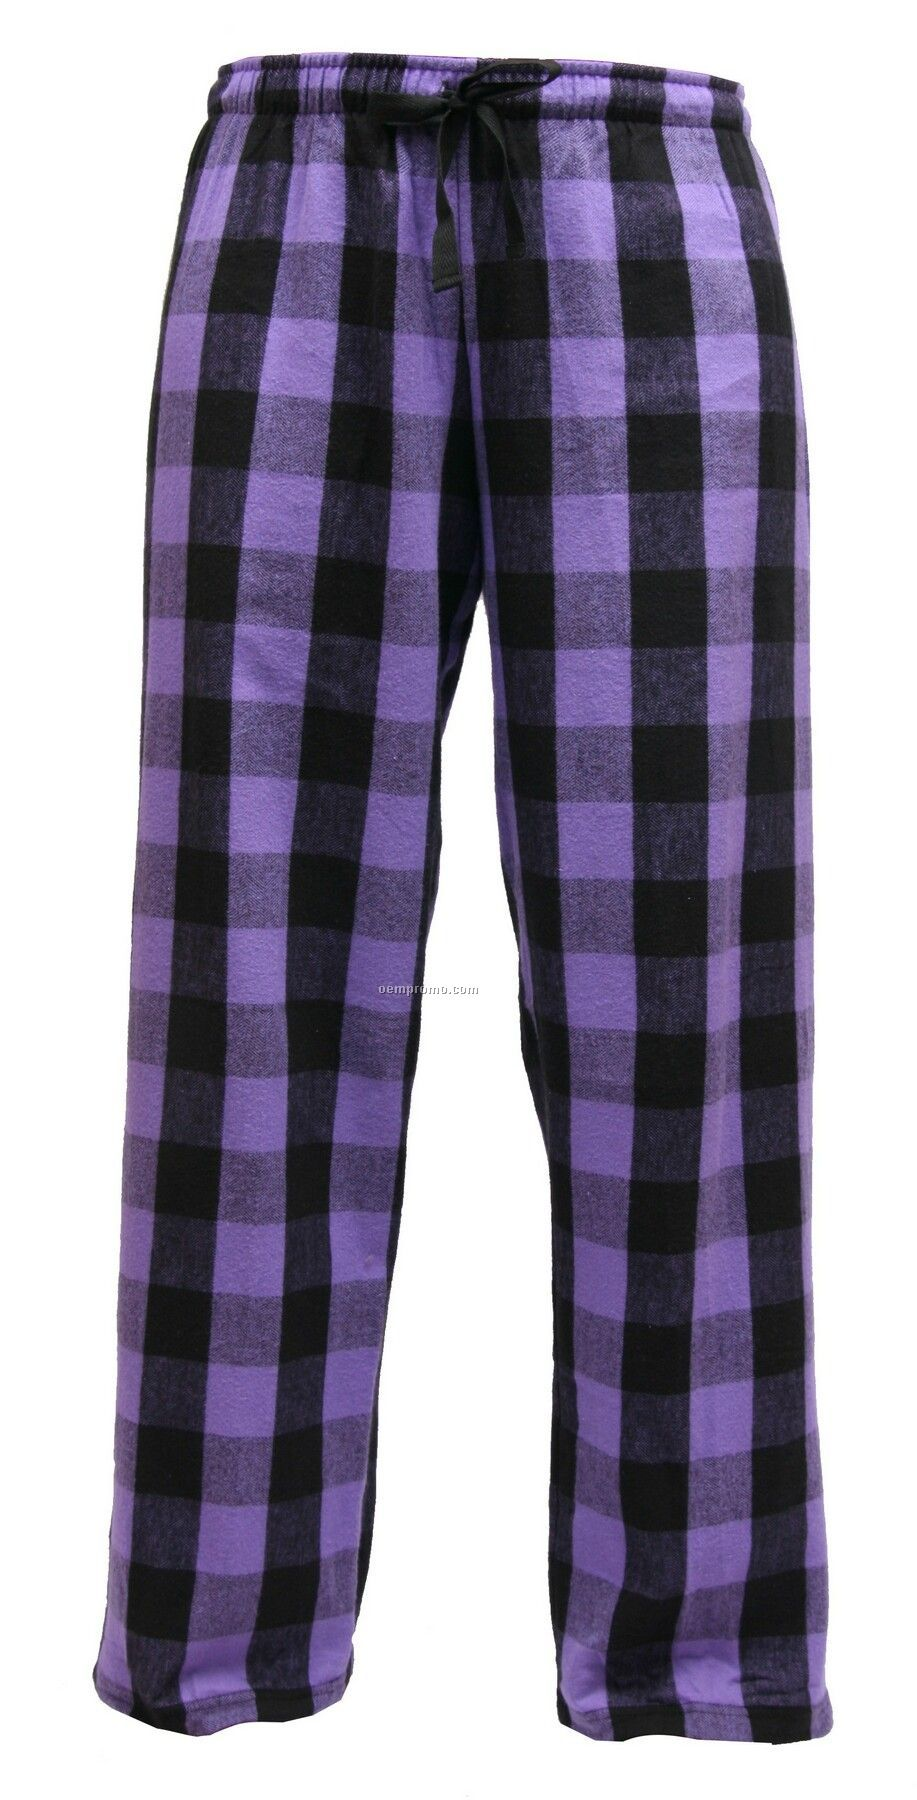 Youth Vivid Violet Plaid Fashion Flannel Pant With Tie Cord